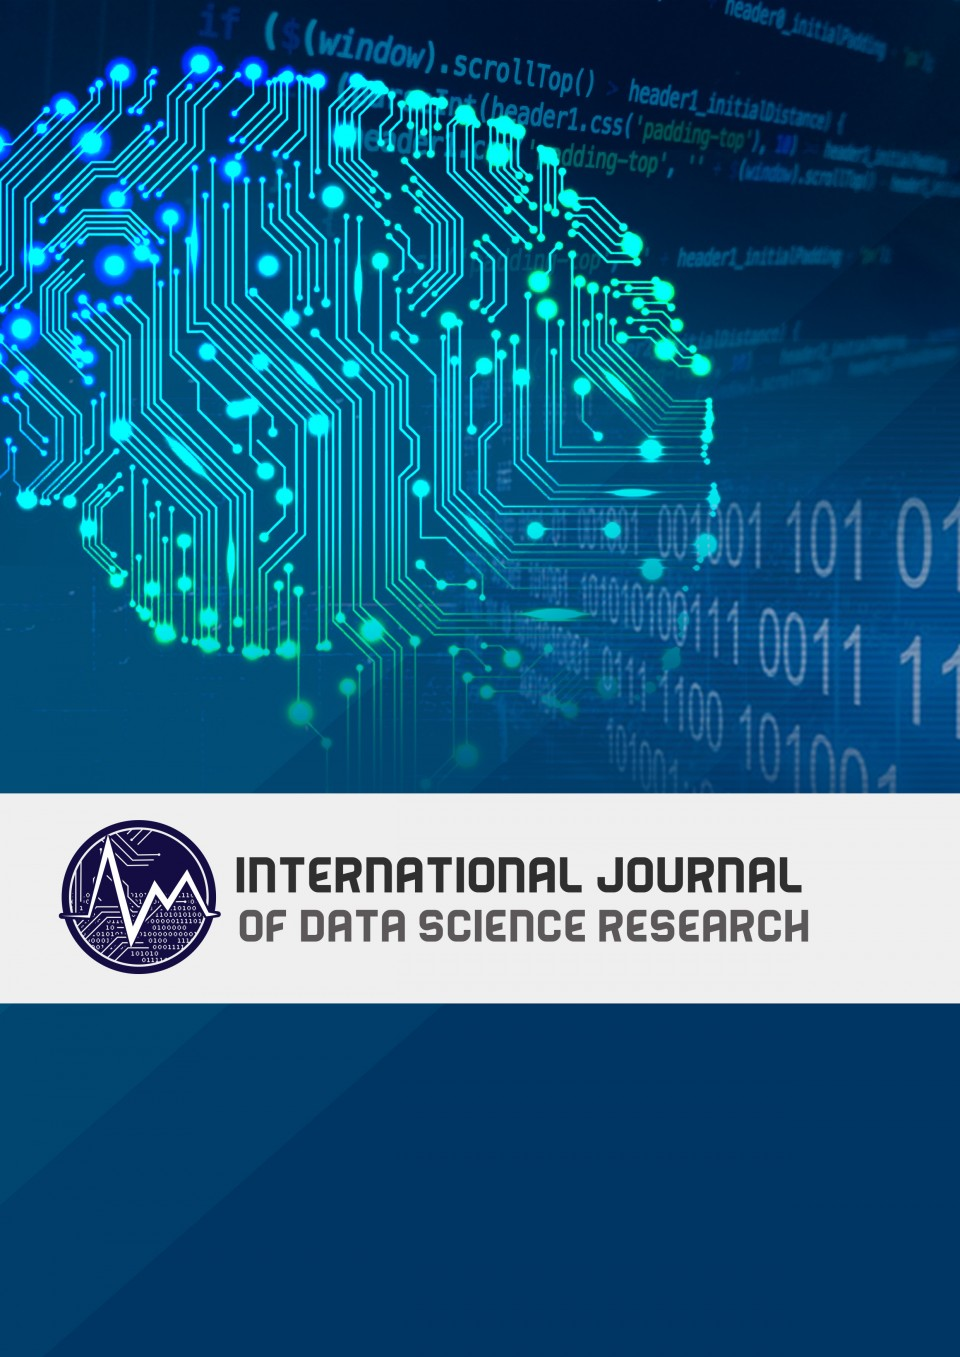 017 Research Paper Cover Issue 58 En Us Data Science Papers Sensational Pdf 2018 960